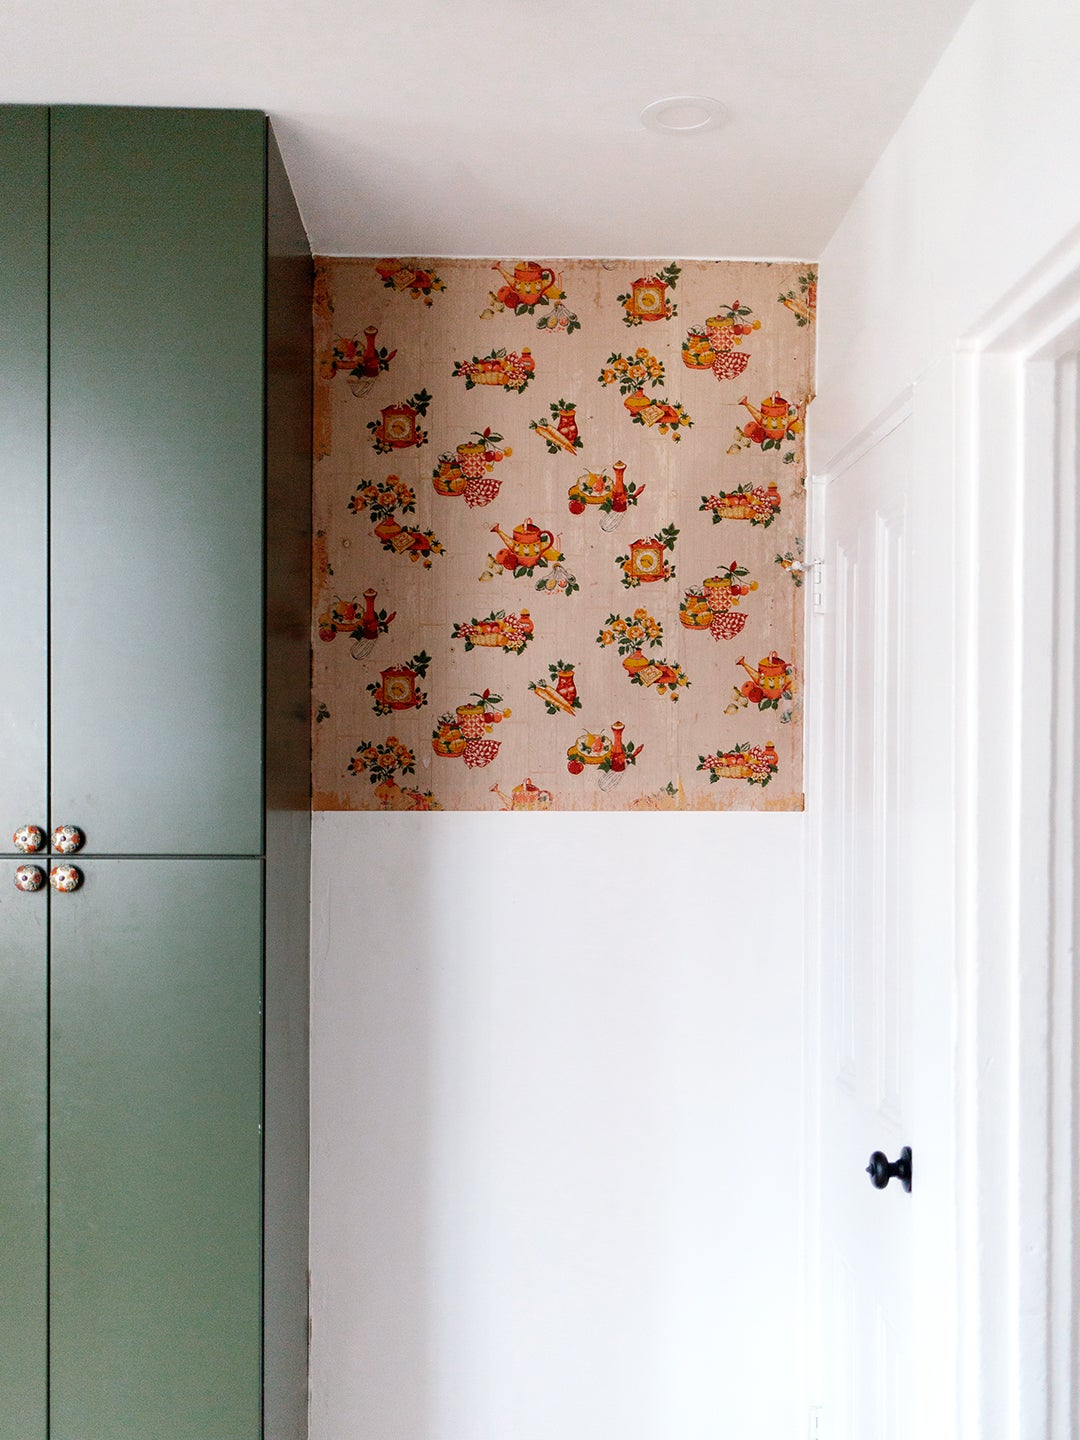 orange wallpaper near the top of the wall